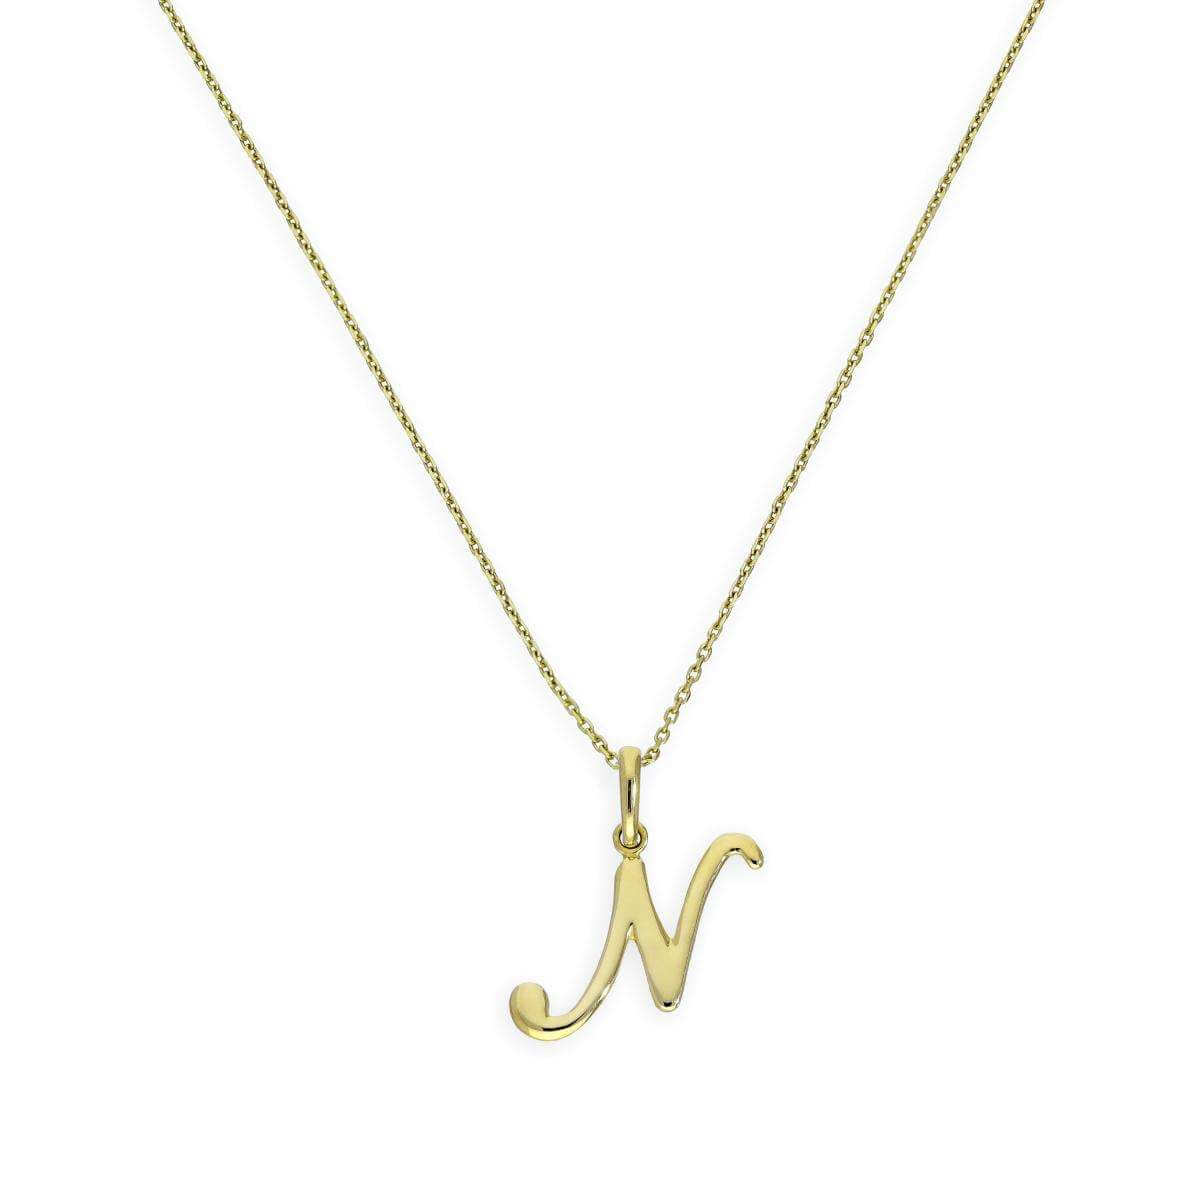 9ct Gold Fancy Calligraphy Script Letter N Pendant Necklace 16 - 20 Inches